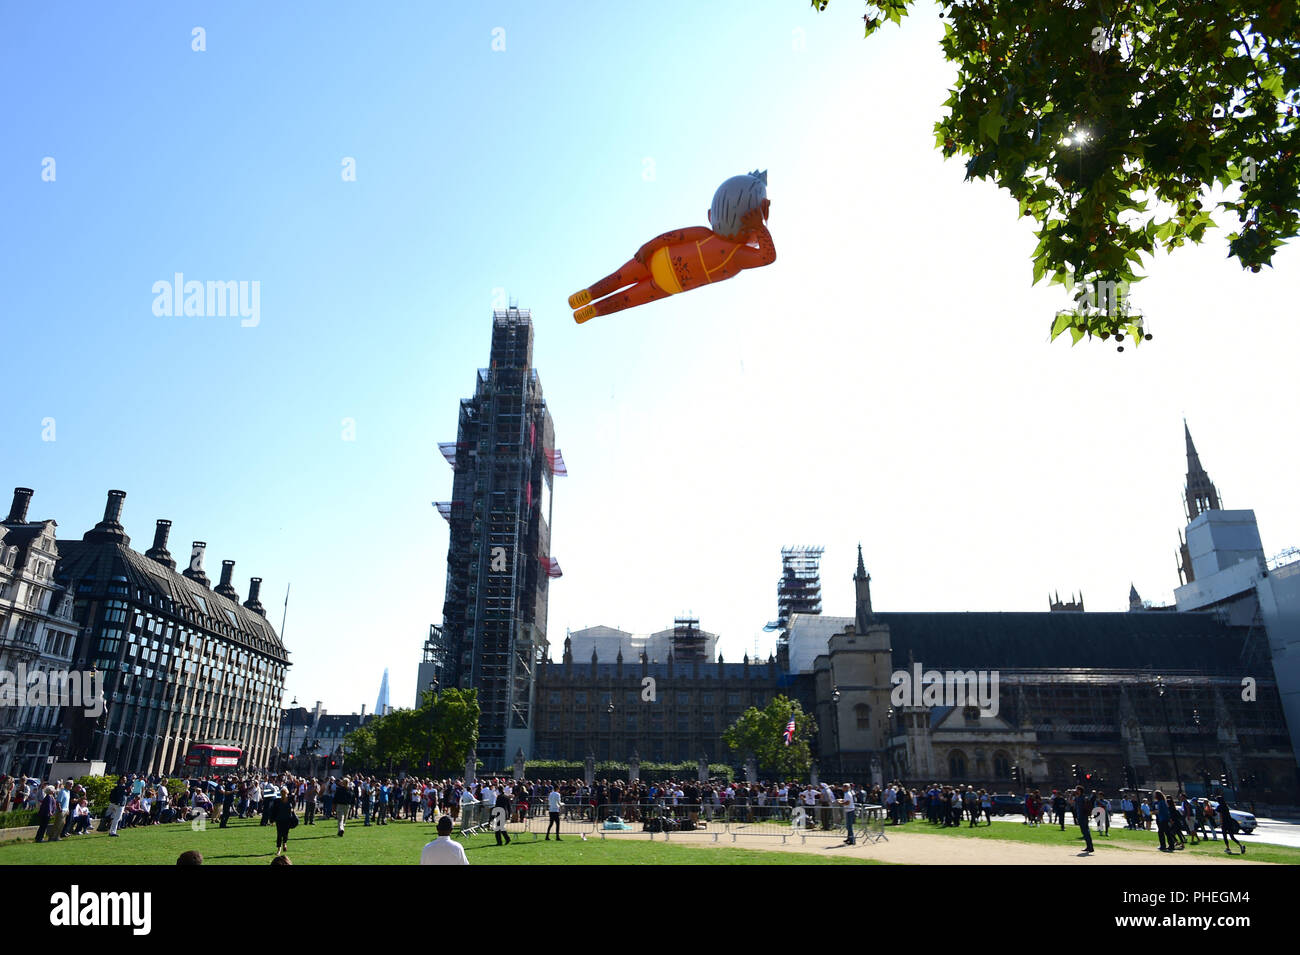 An inflated blimp of London mayor Sadiq Khan depicted in a bikini flies over Parliament Square, Westminster in London, as part of a campaign seeking to remove Mr Khan from his post. - Stock Image